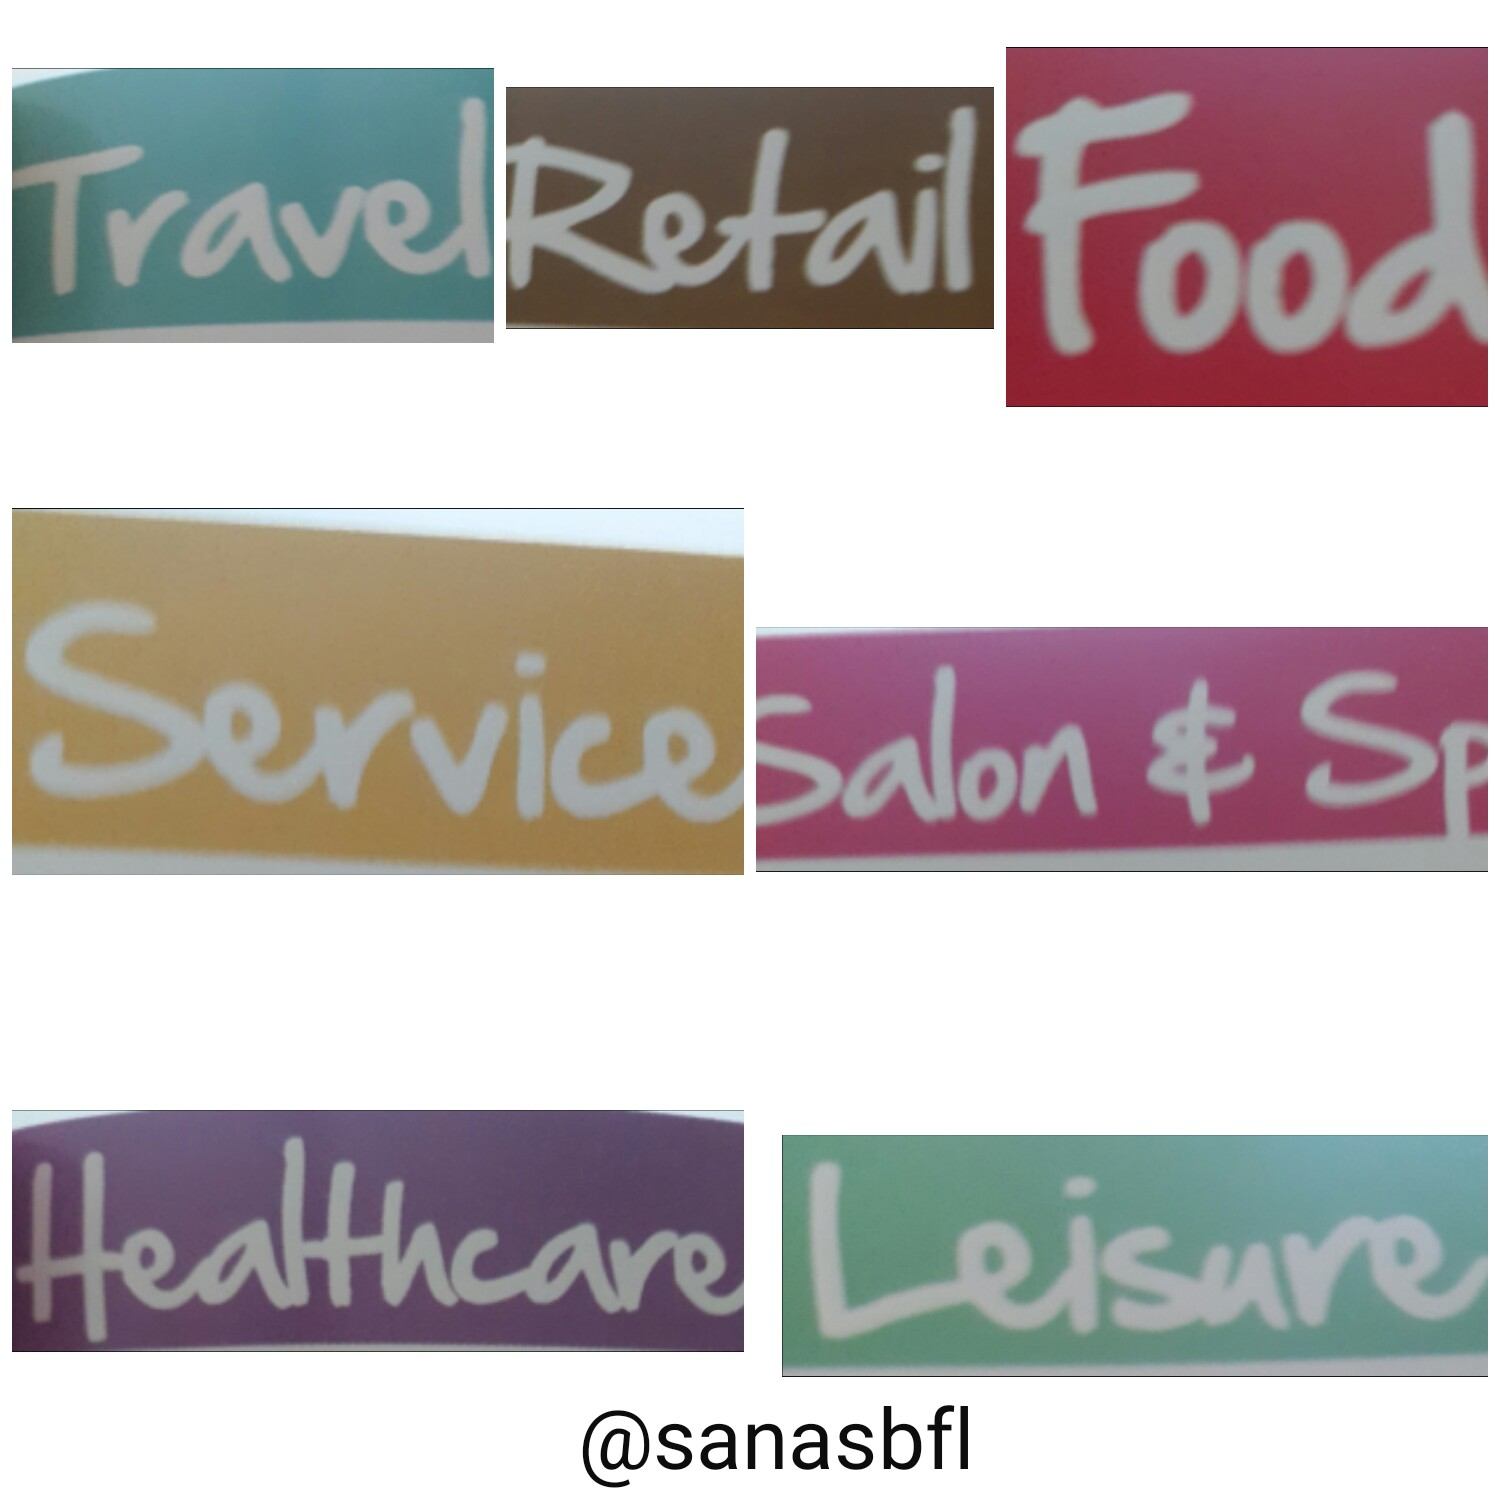 Sanas Blog For Life Vouch 365 Pics And Review Voucher My Salon This Book Consists Of 7 Parts Including Leisure Vouchers Food Spa Health Care Services